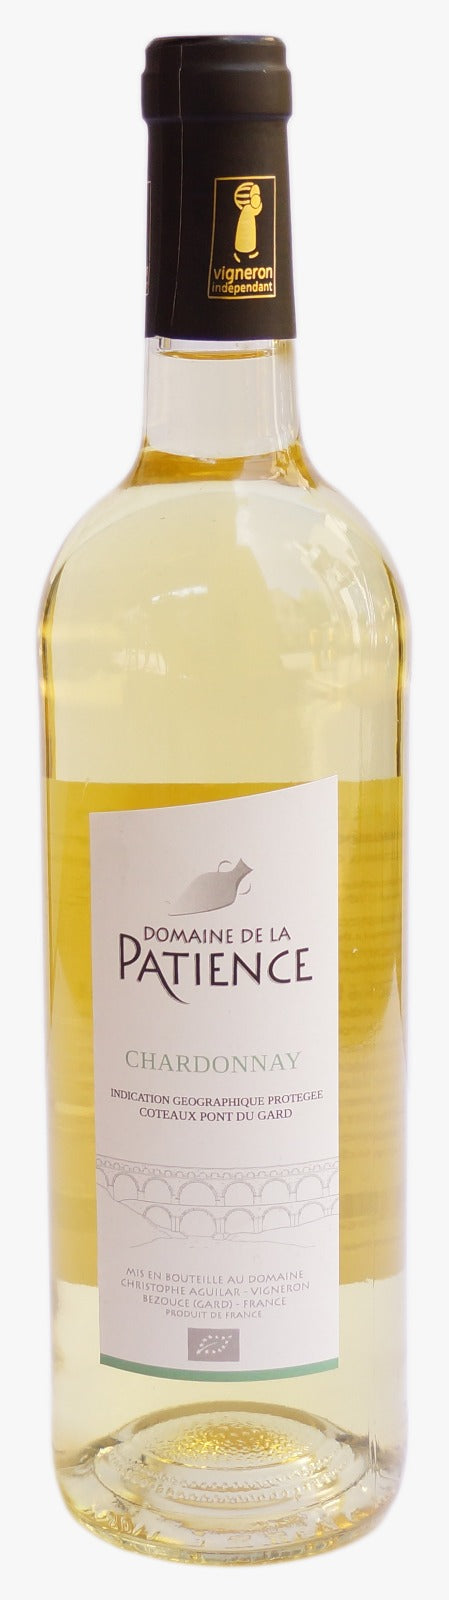 Drinks: White Wines by the bottle